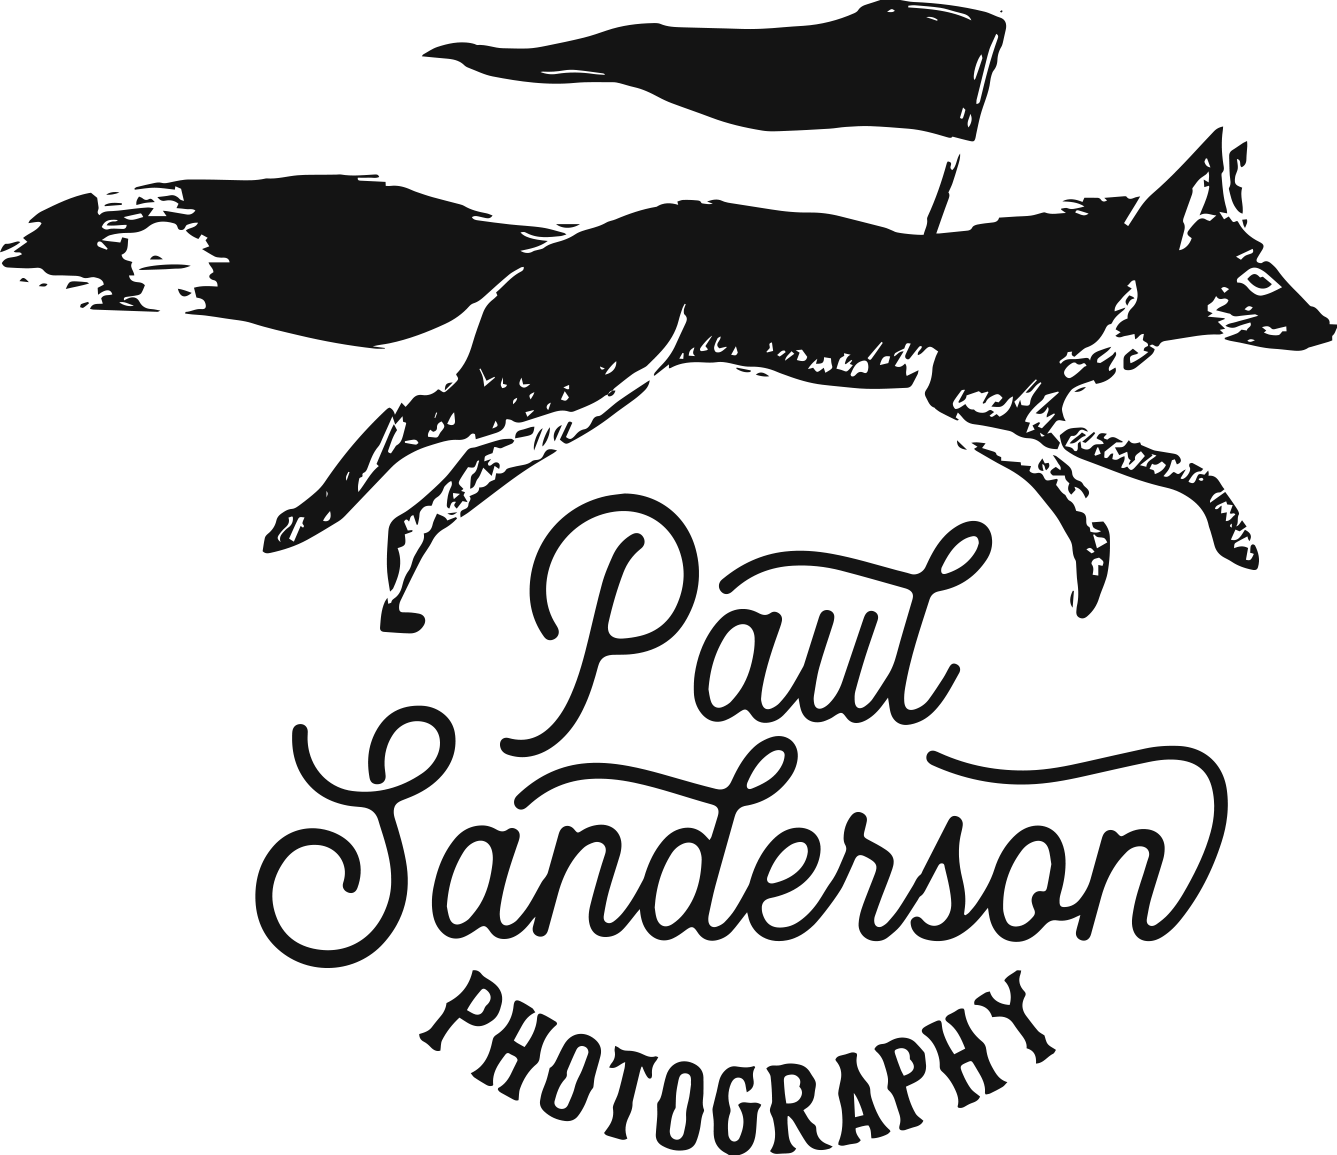 Paul Sanderson Photography